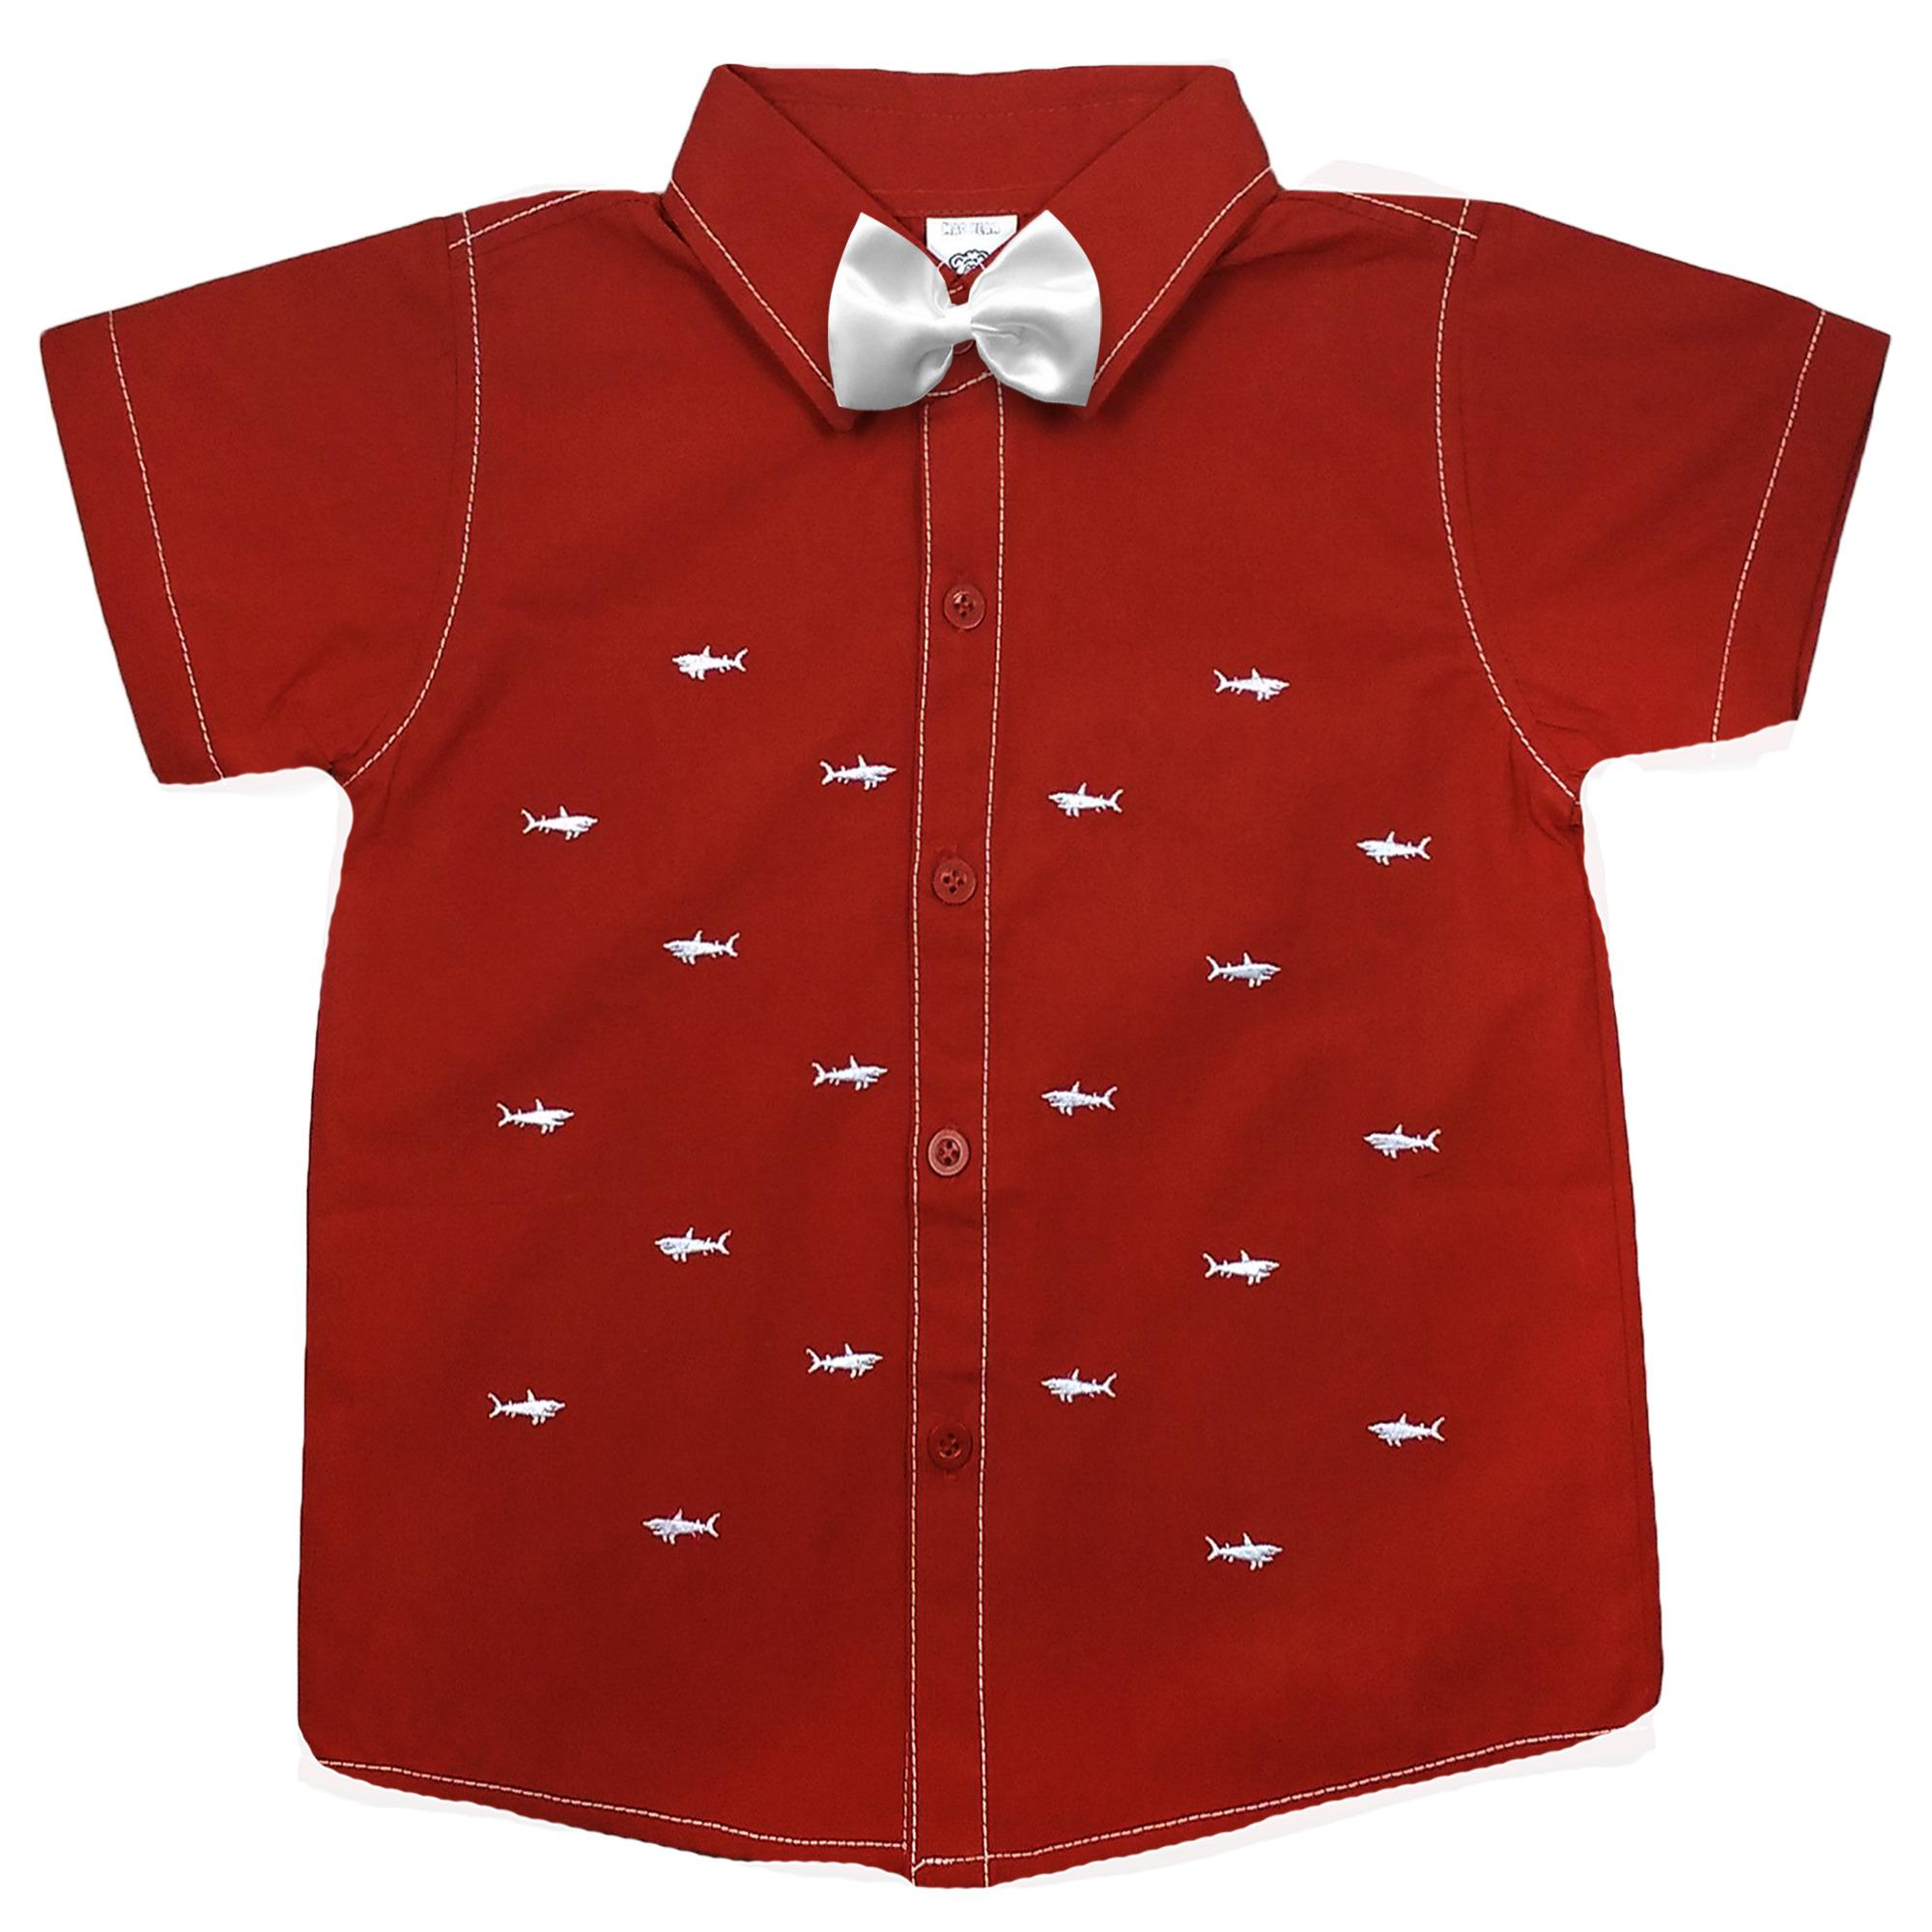 MacBear Baju Setelan Anak Galaxy Wars Stripes Set Red Size 3. Source · Galaxy Wars